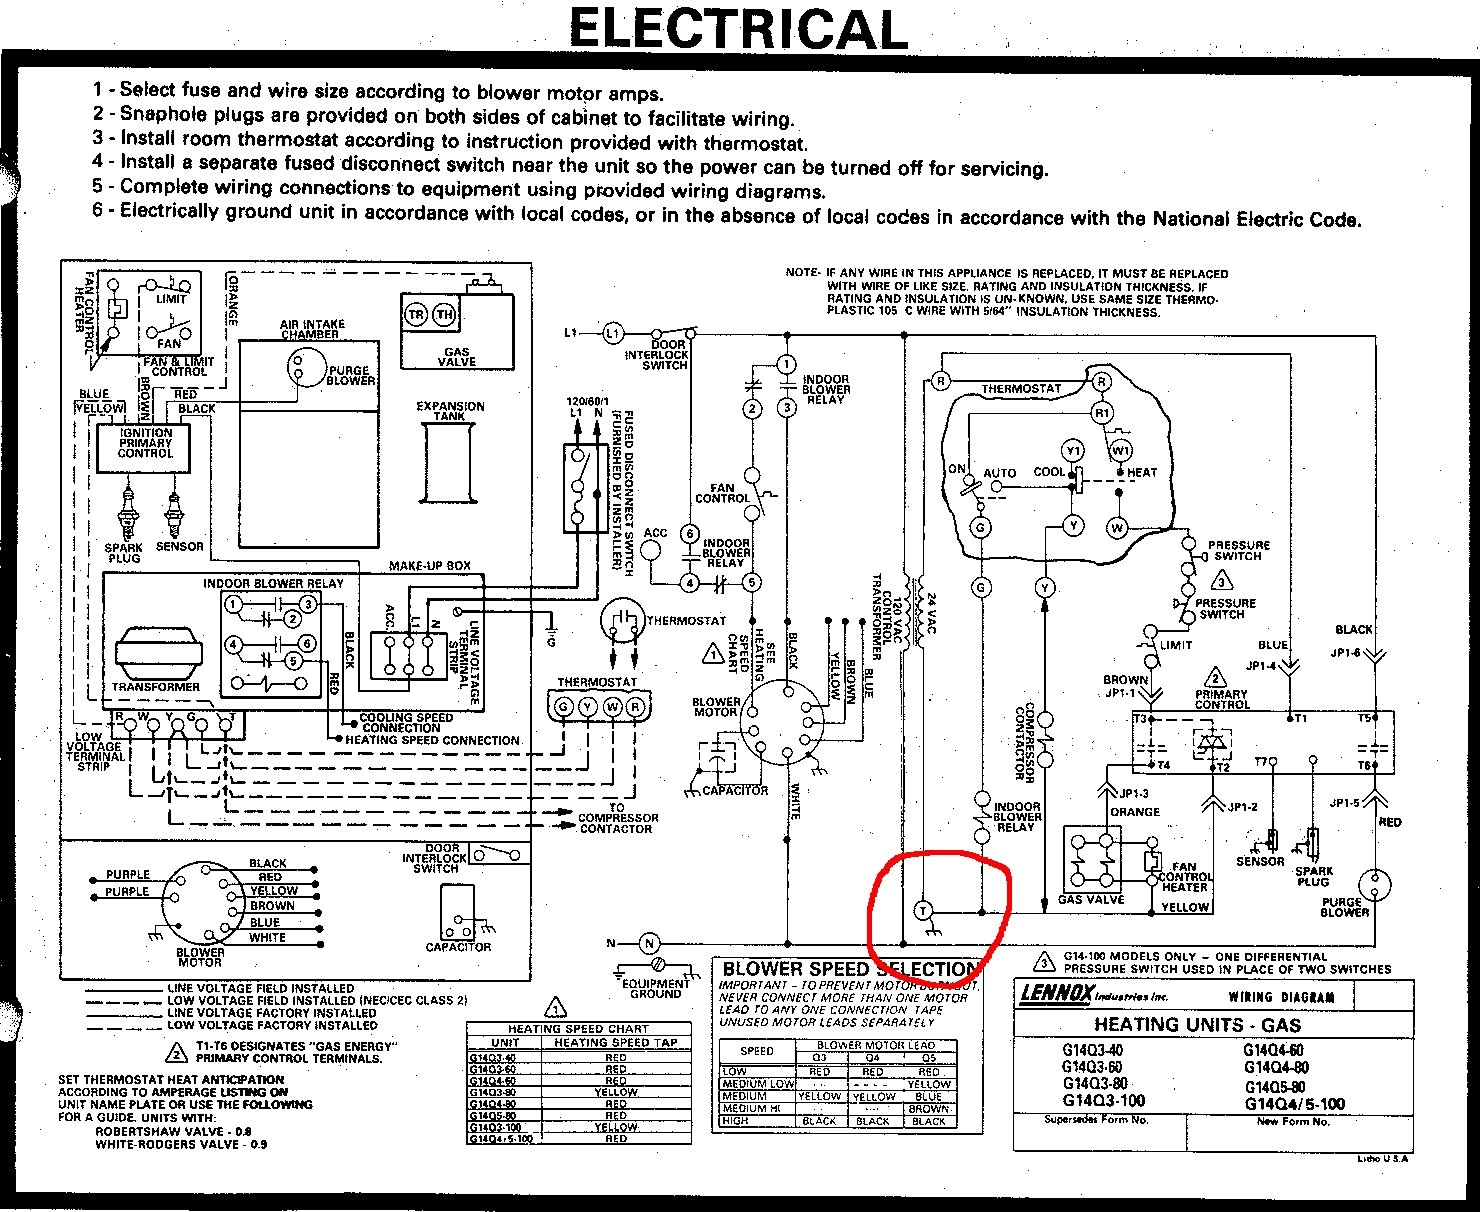 Lennox 51m33 Wiring Diagram Free 3 Function Switch Furnace Thermostat Can I Use The T Terminal